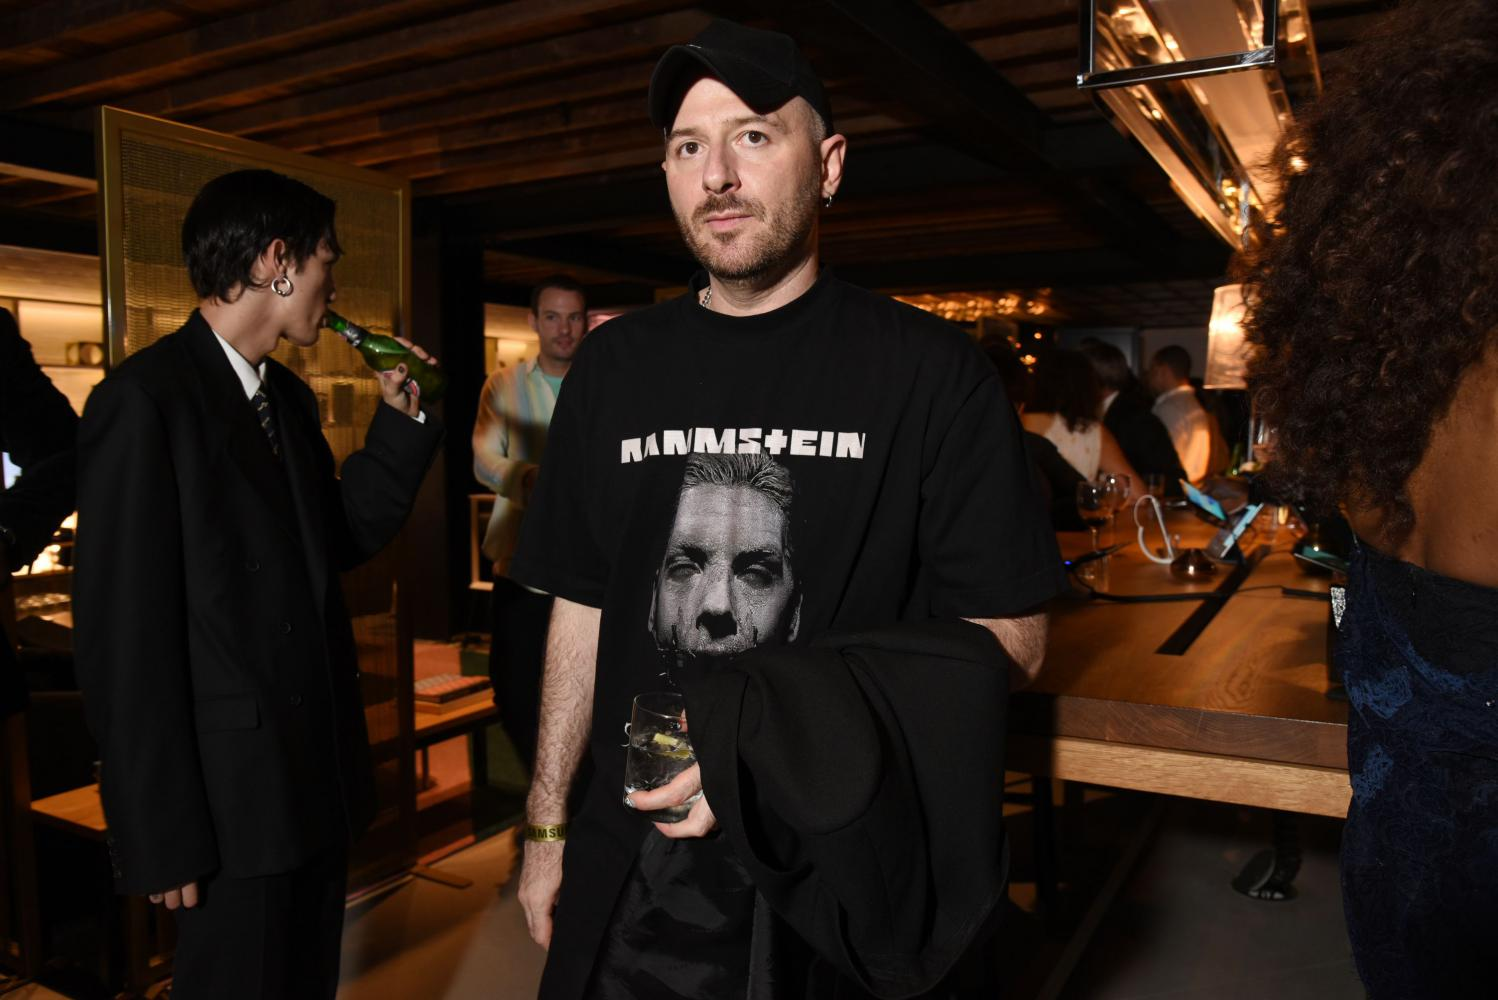 Demna Gvasalia bei der Verleihung der CFDA Fashion Awards 2017 in New York